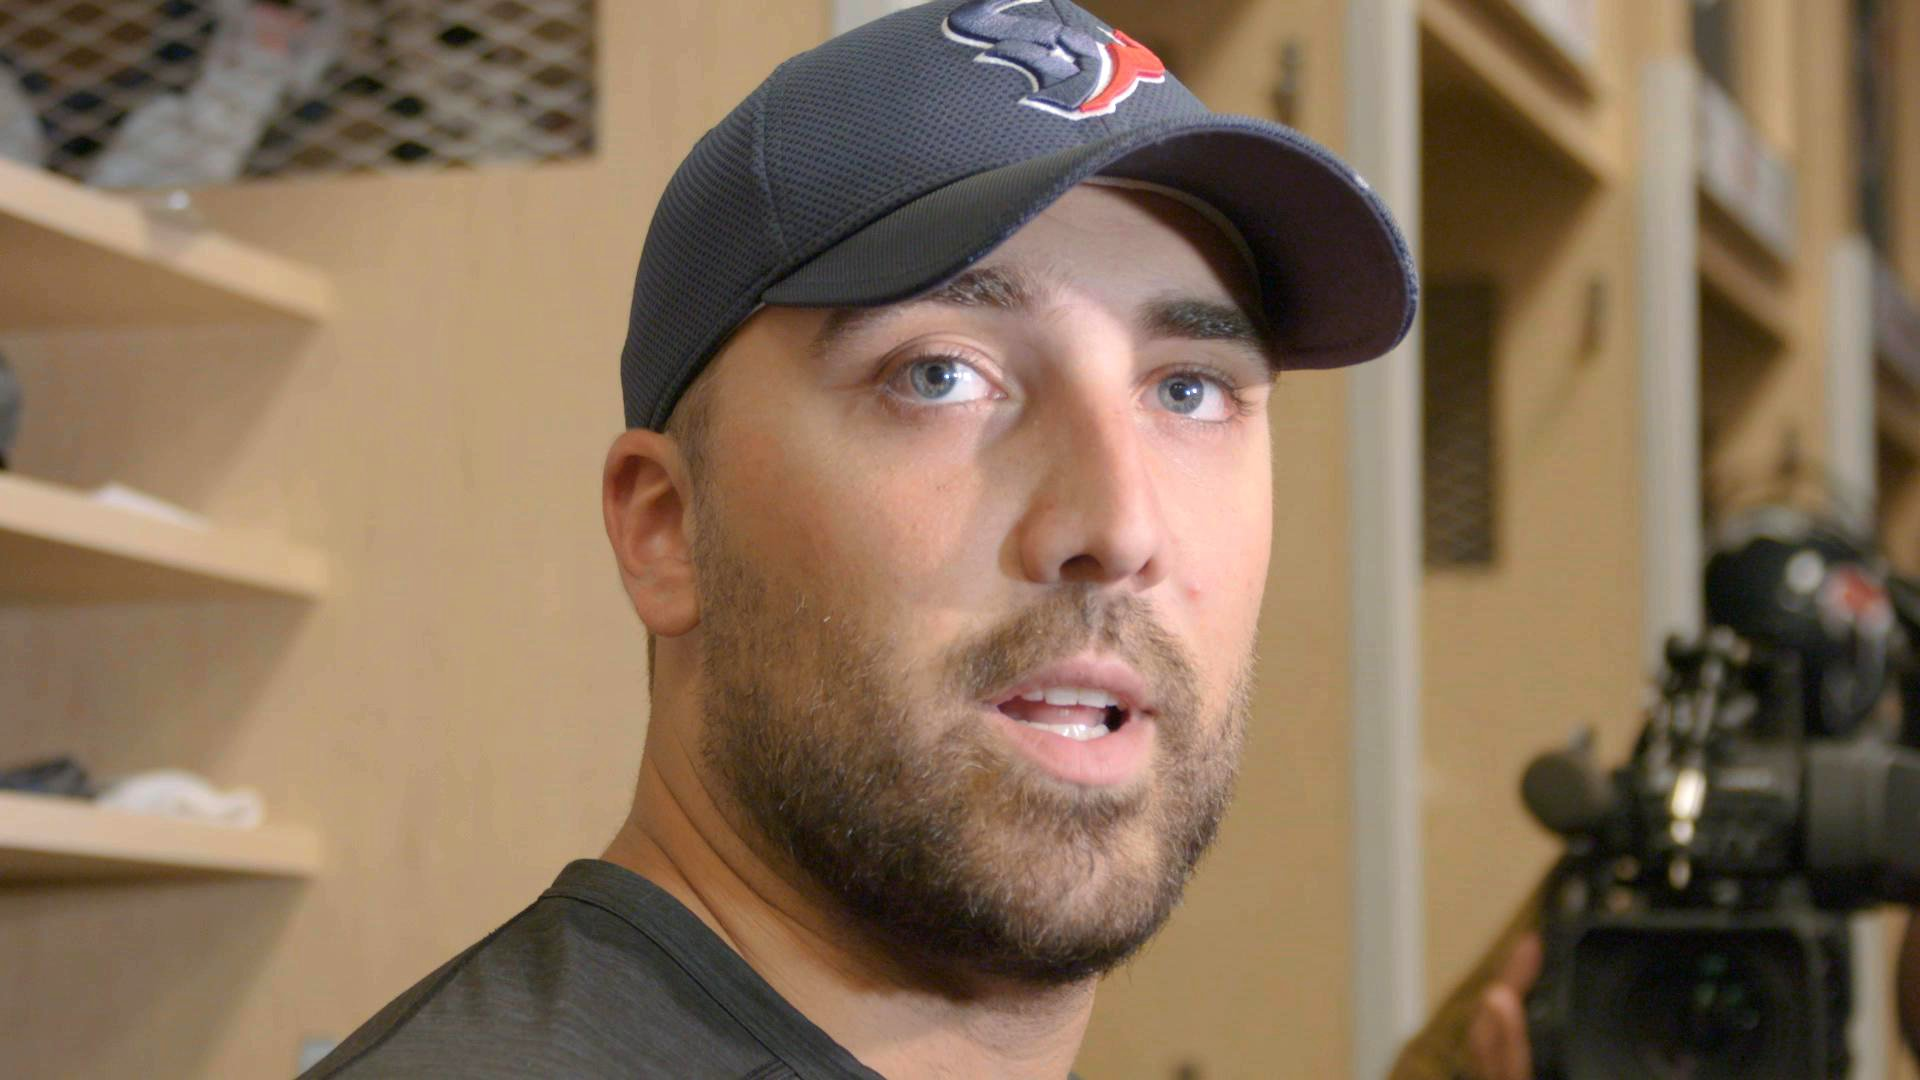 'The most important thing to me is to win.'  Hear from QB Tom Savage.  ��: https://t.co/kpXkZvGMSP https://t.co/Pjlm2Y5QbH